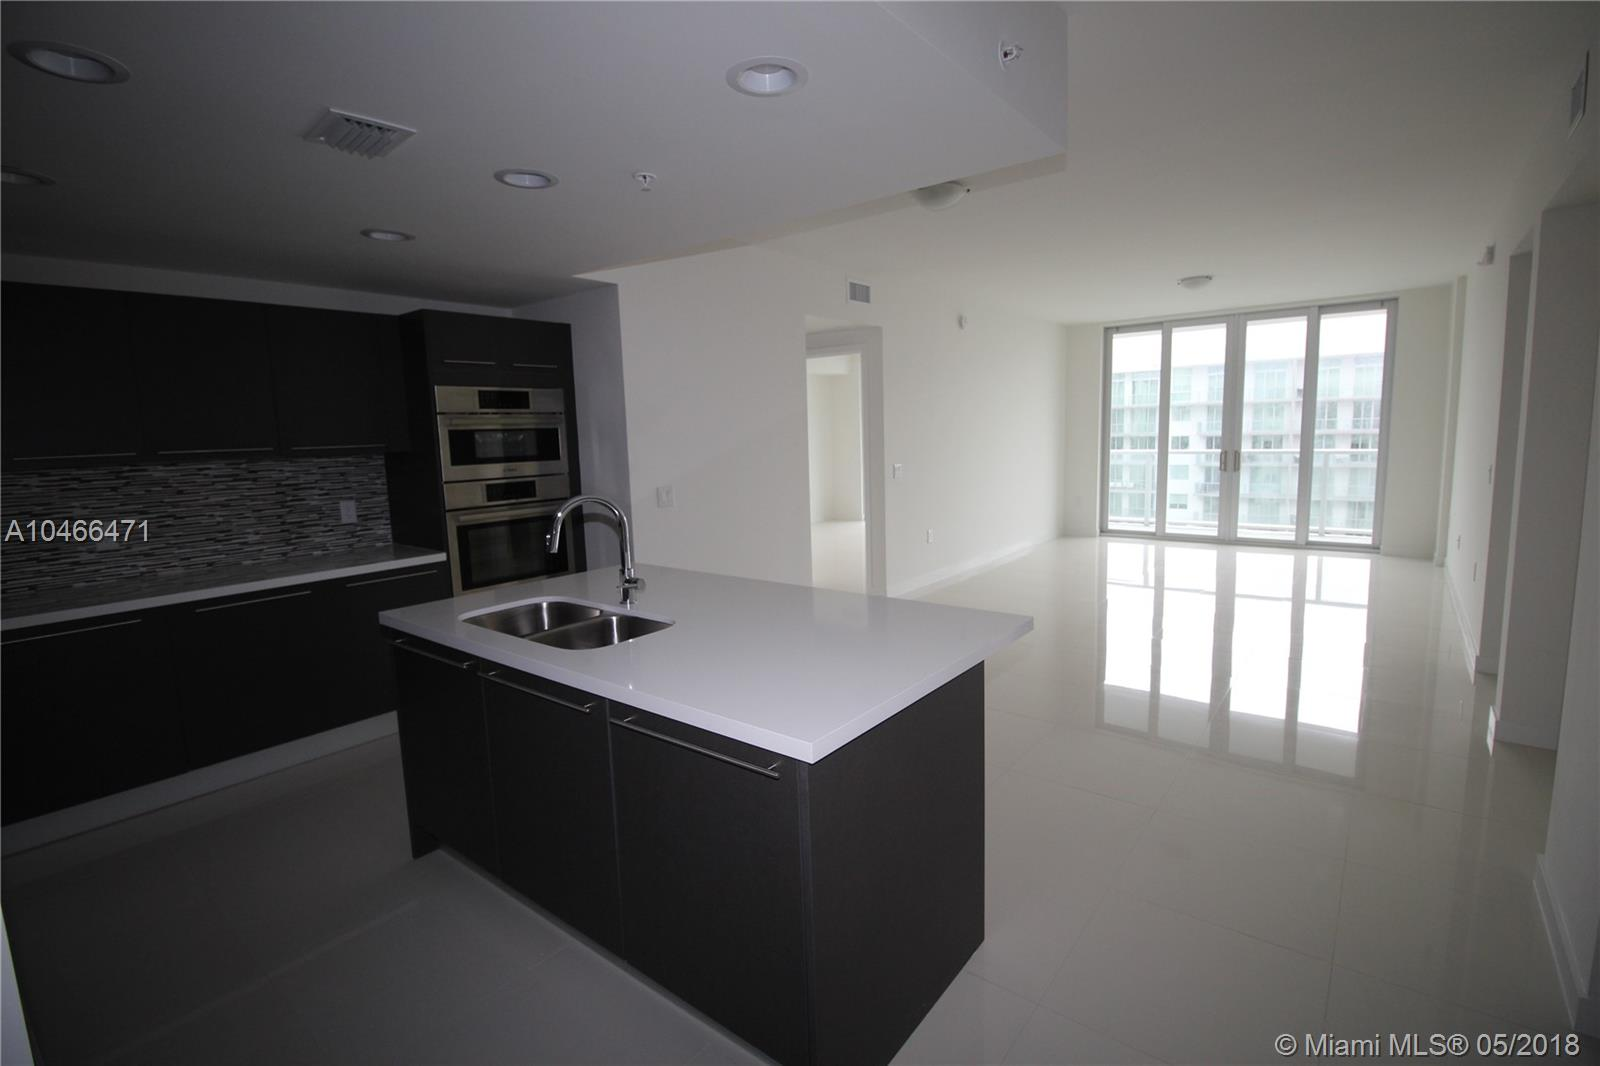 7825 Nw 107th Ave #709, Miami FL, 33178